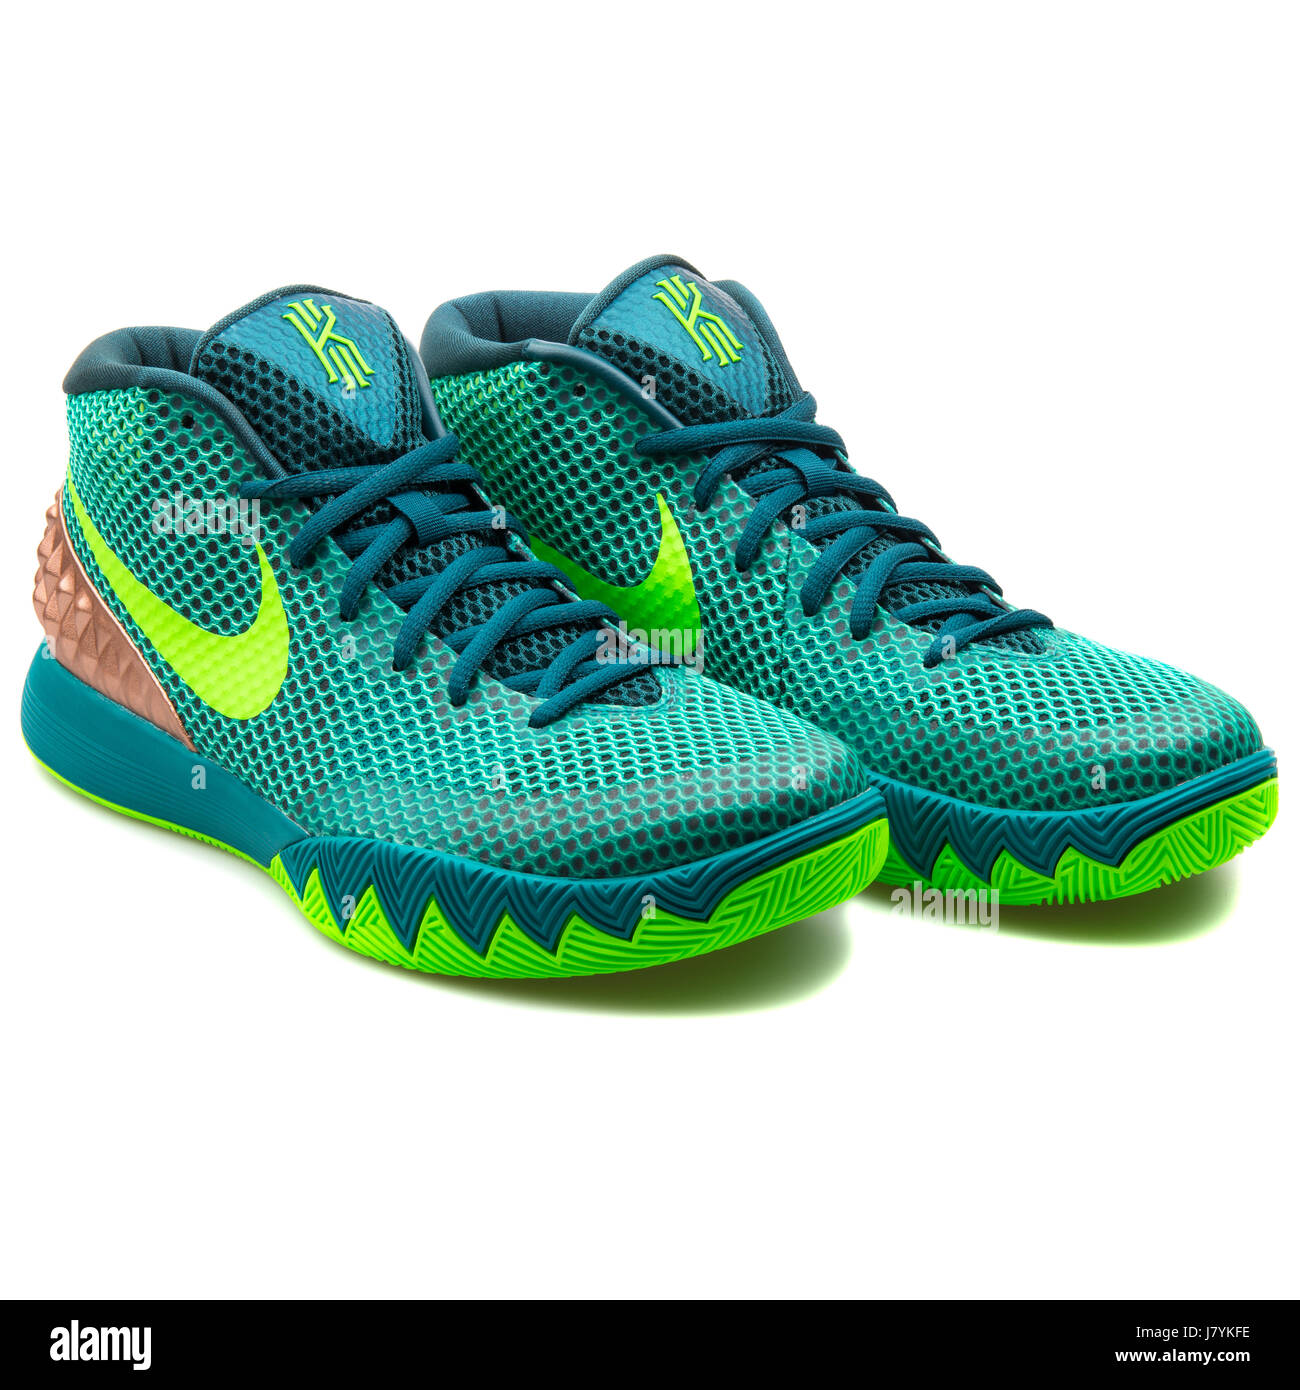 11a753a506a1 Nike Kyrie 1 Men s Green Basketball Sneakers - 705277-333 Stock ...